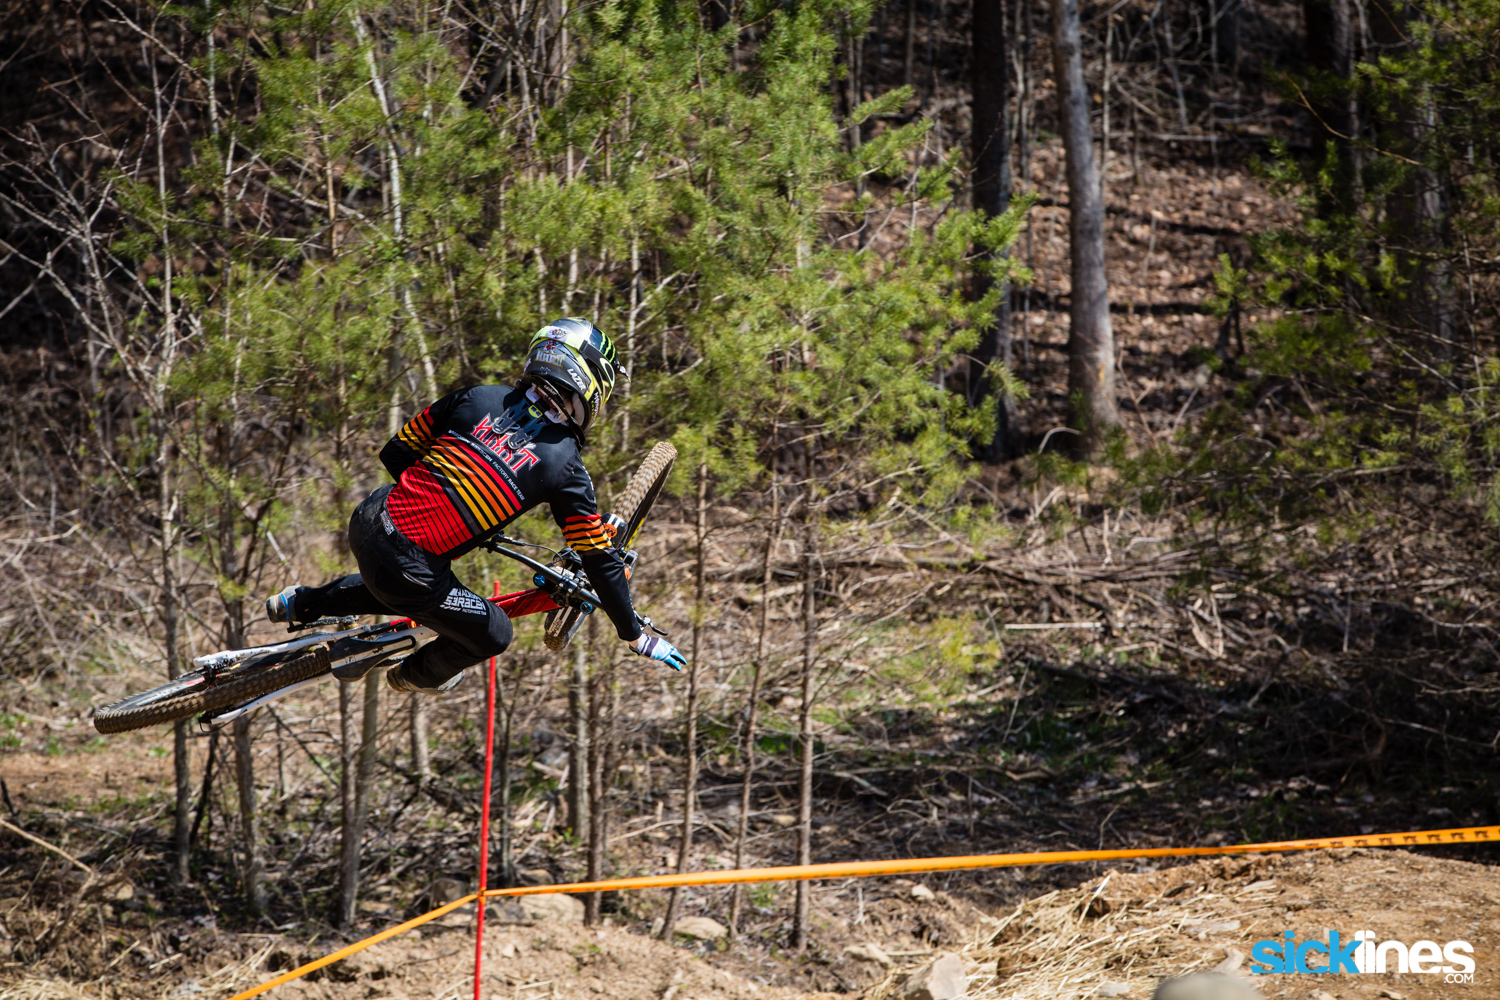 , Event: 2018 Windrock Pro GRT Final Results Full (Elite, Junior, Cat 1 2 3 Semi Pro)